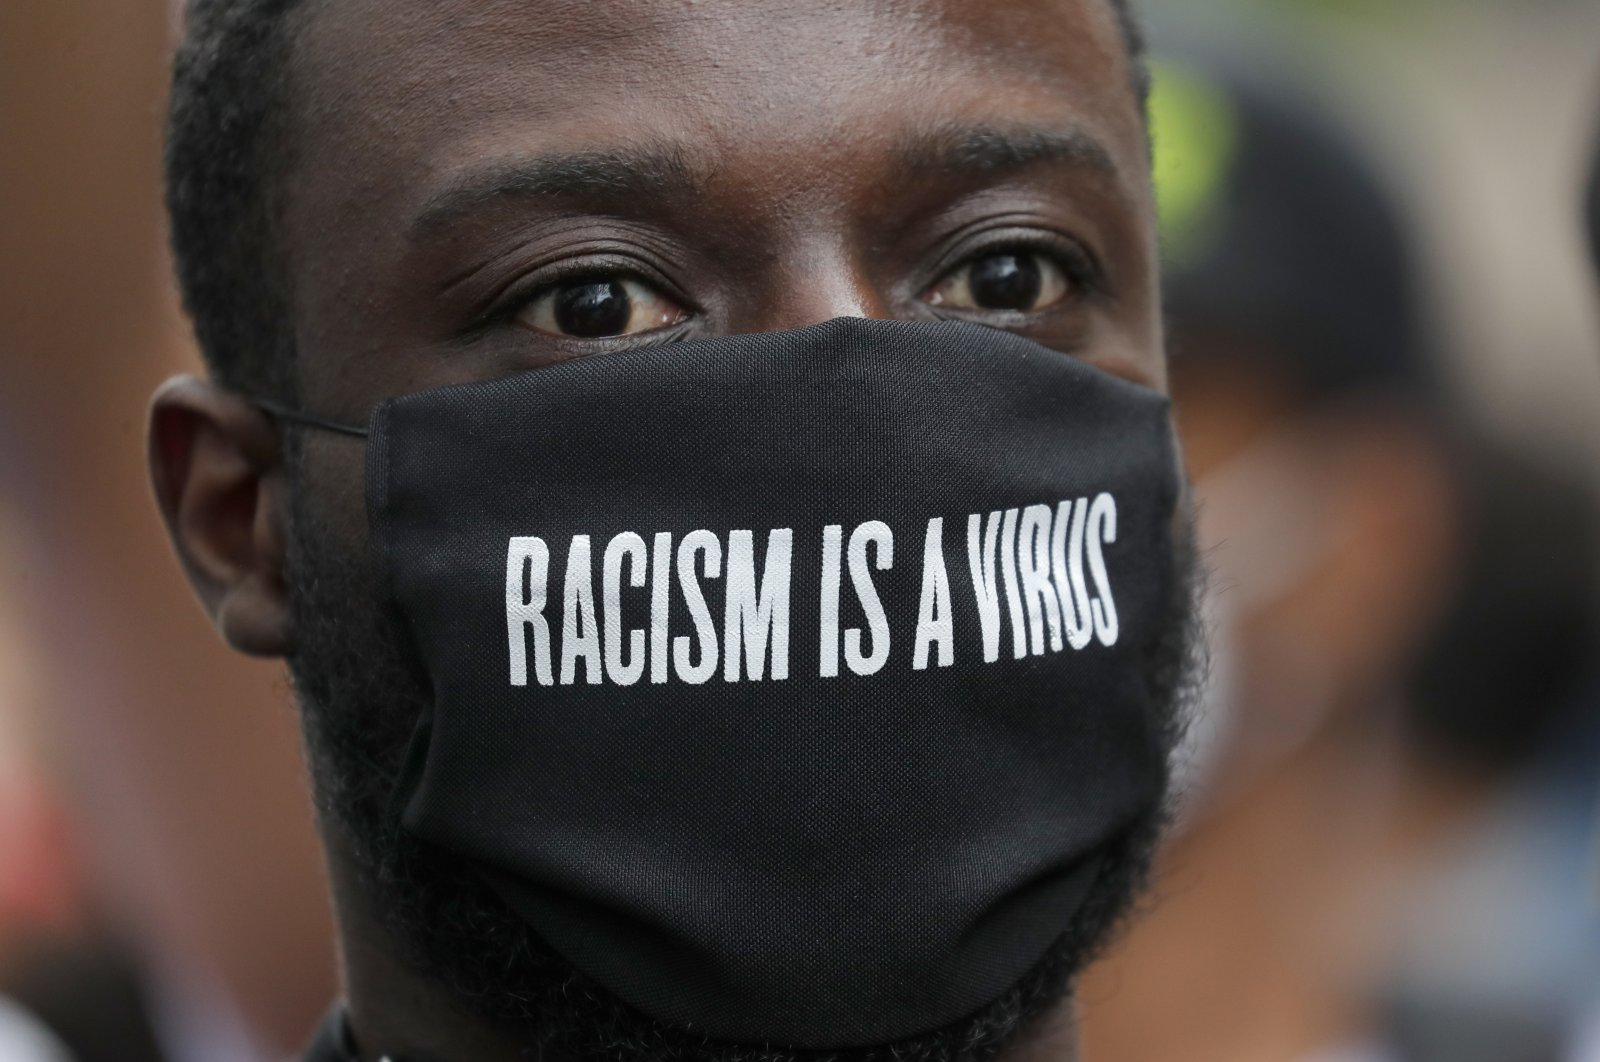 A protester wears a face mask in front of the U.S. embassy, during the Black Lives Matter protest rally in London, June 7, 2020. (AP Photo)